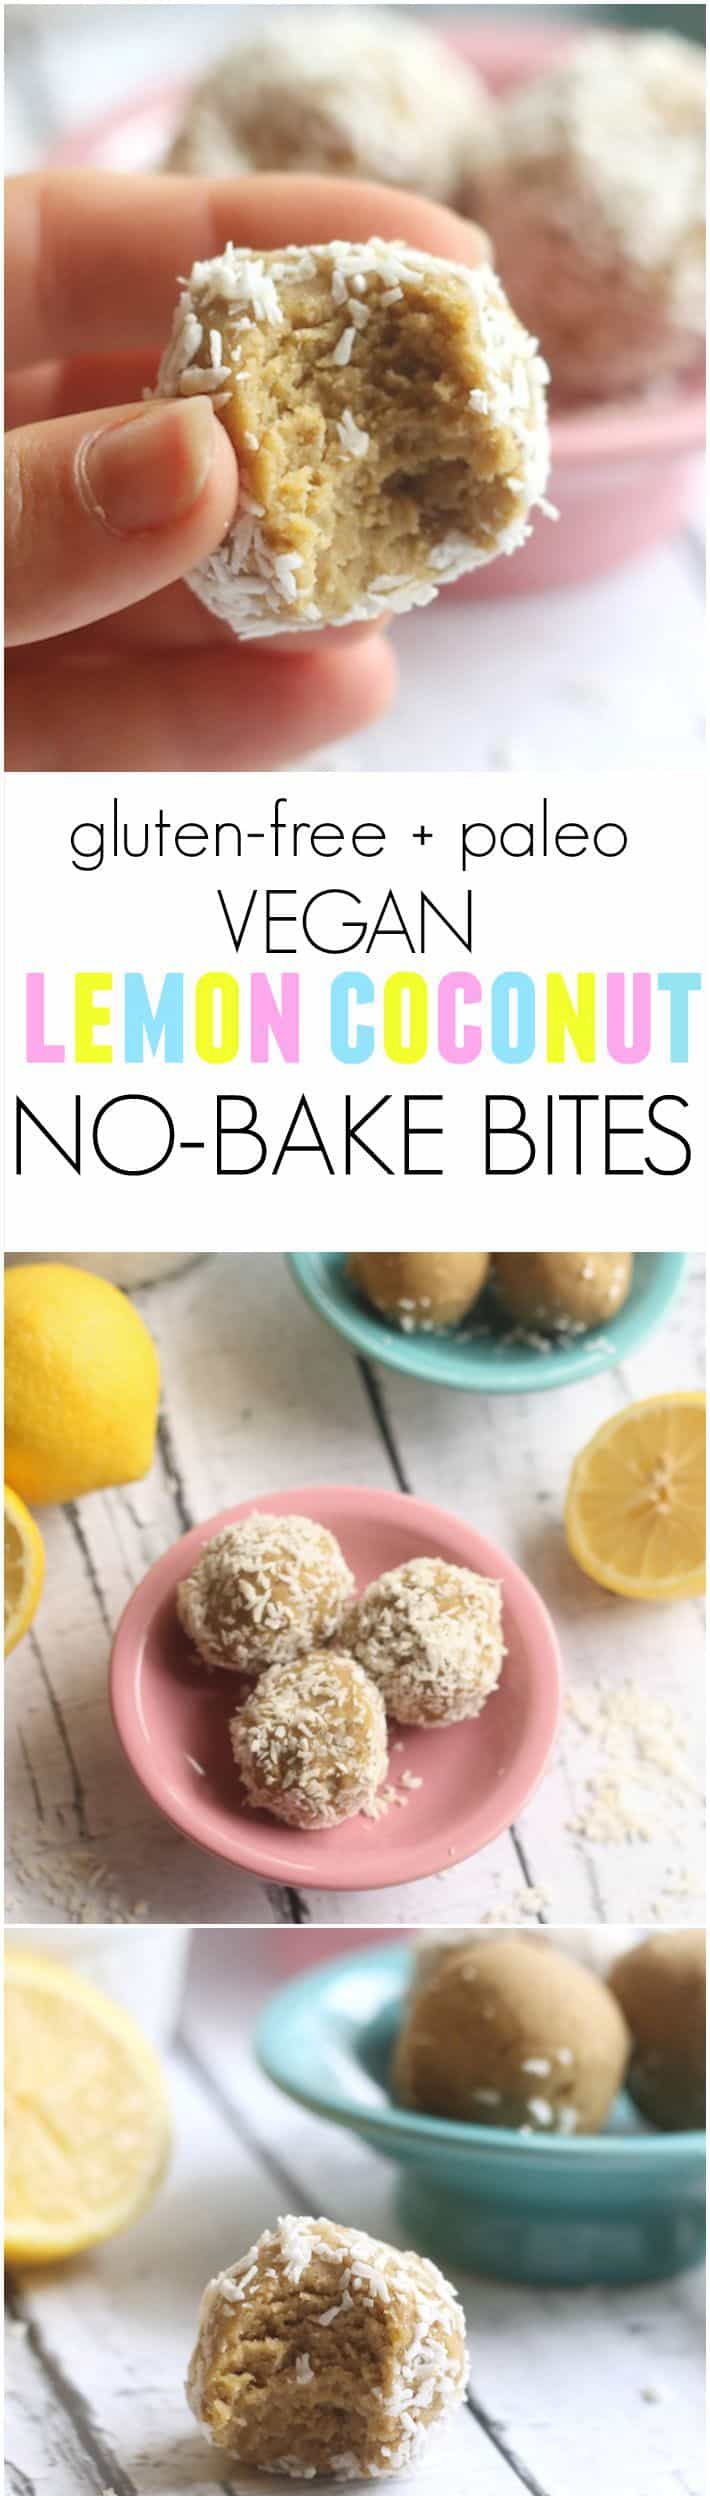 Lemon Coconut No-Bake Bites…these quick and easy treats taste like lemon cake! Made with coconut flour, they